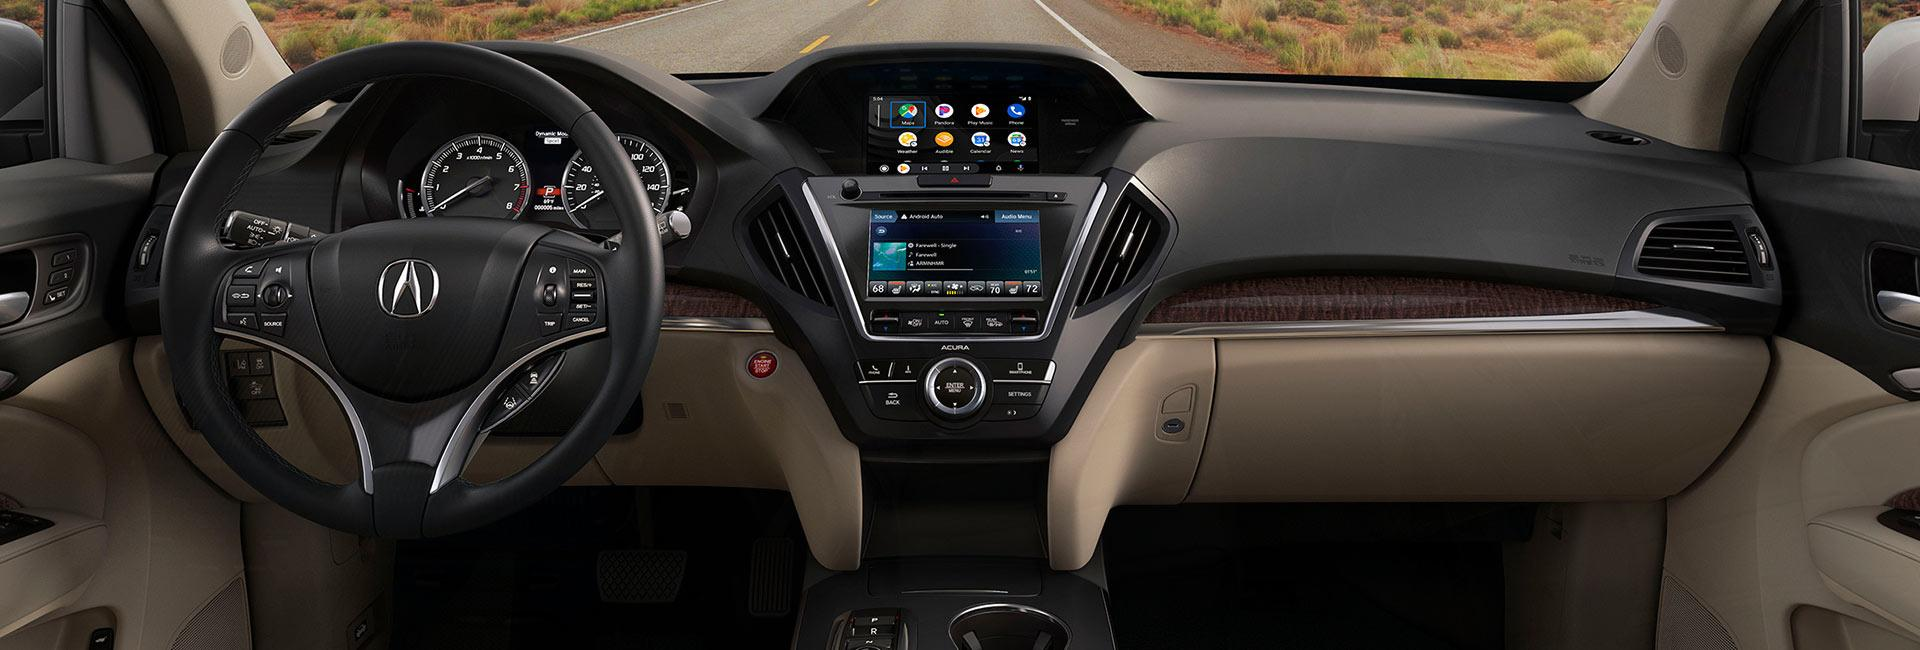 Interior image of the 2020 Acura MDX